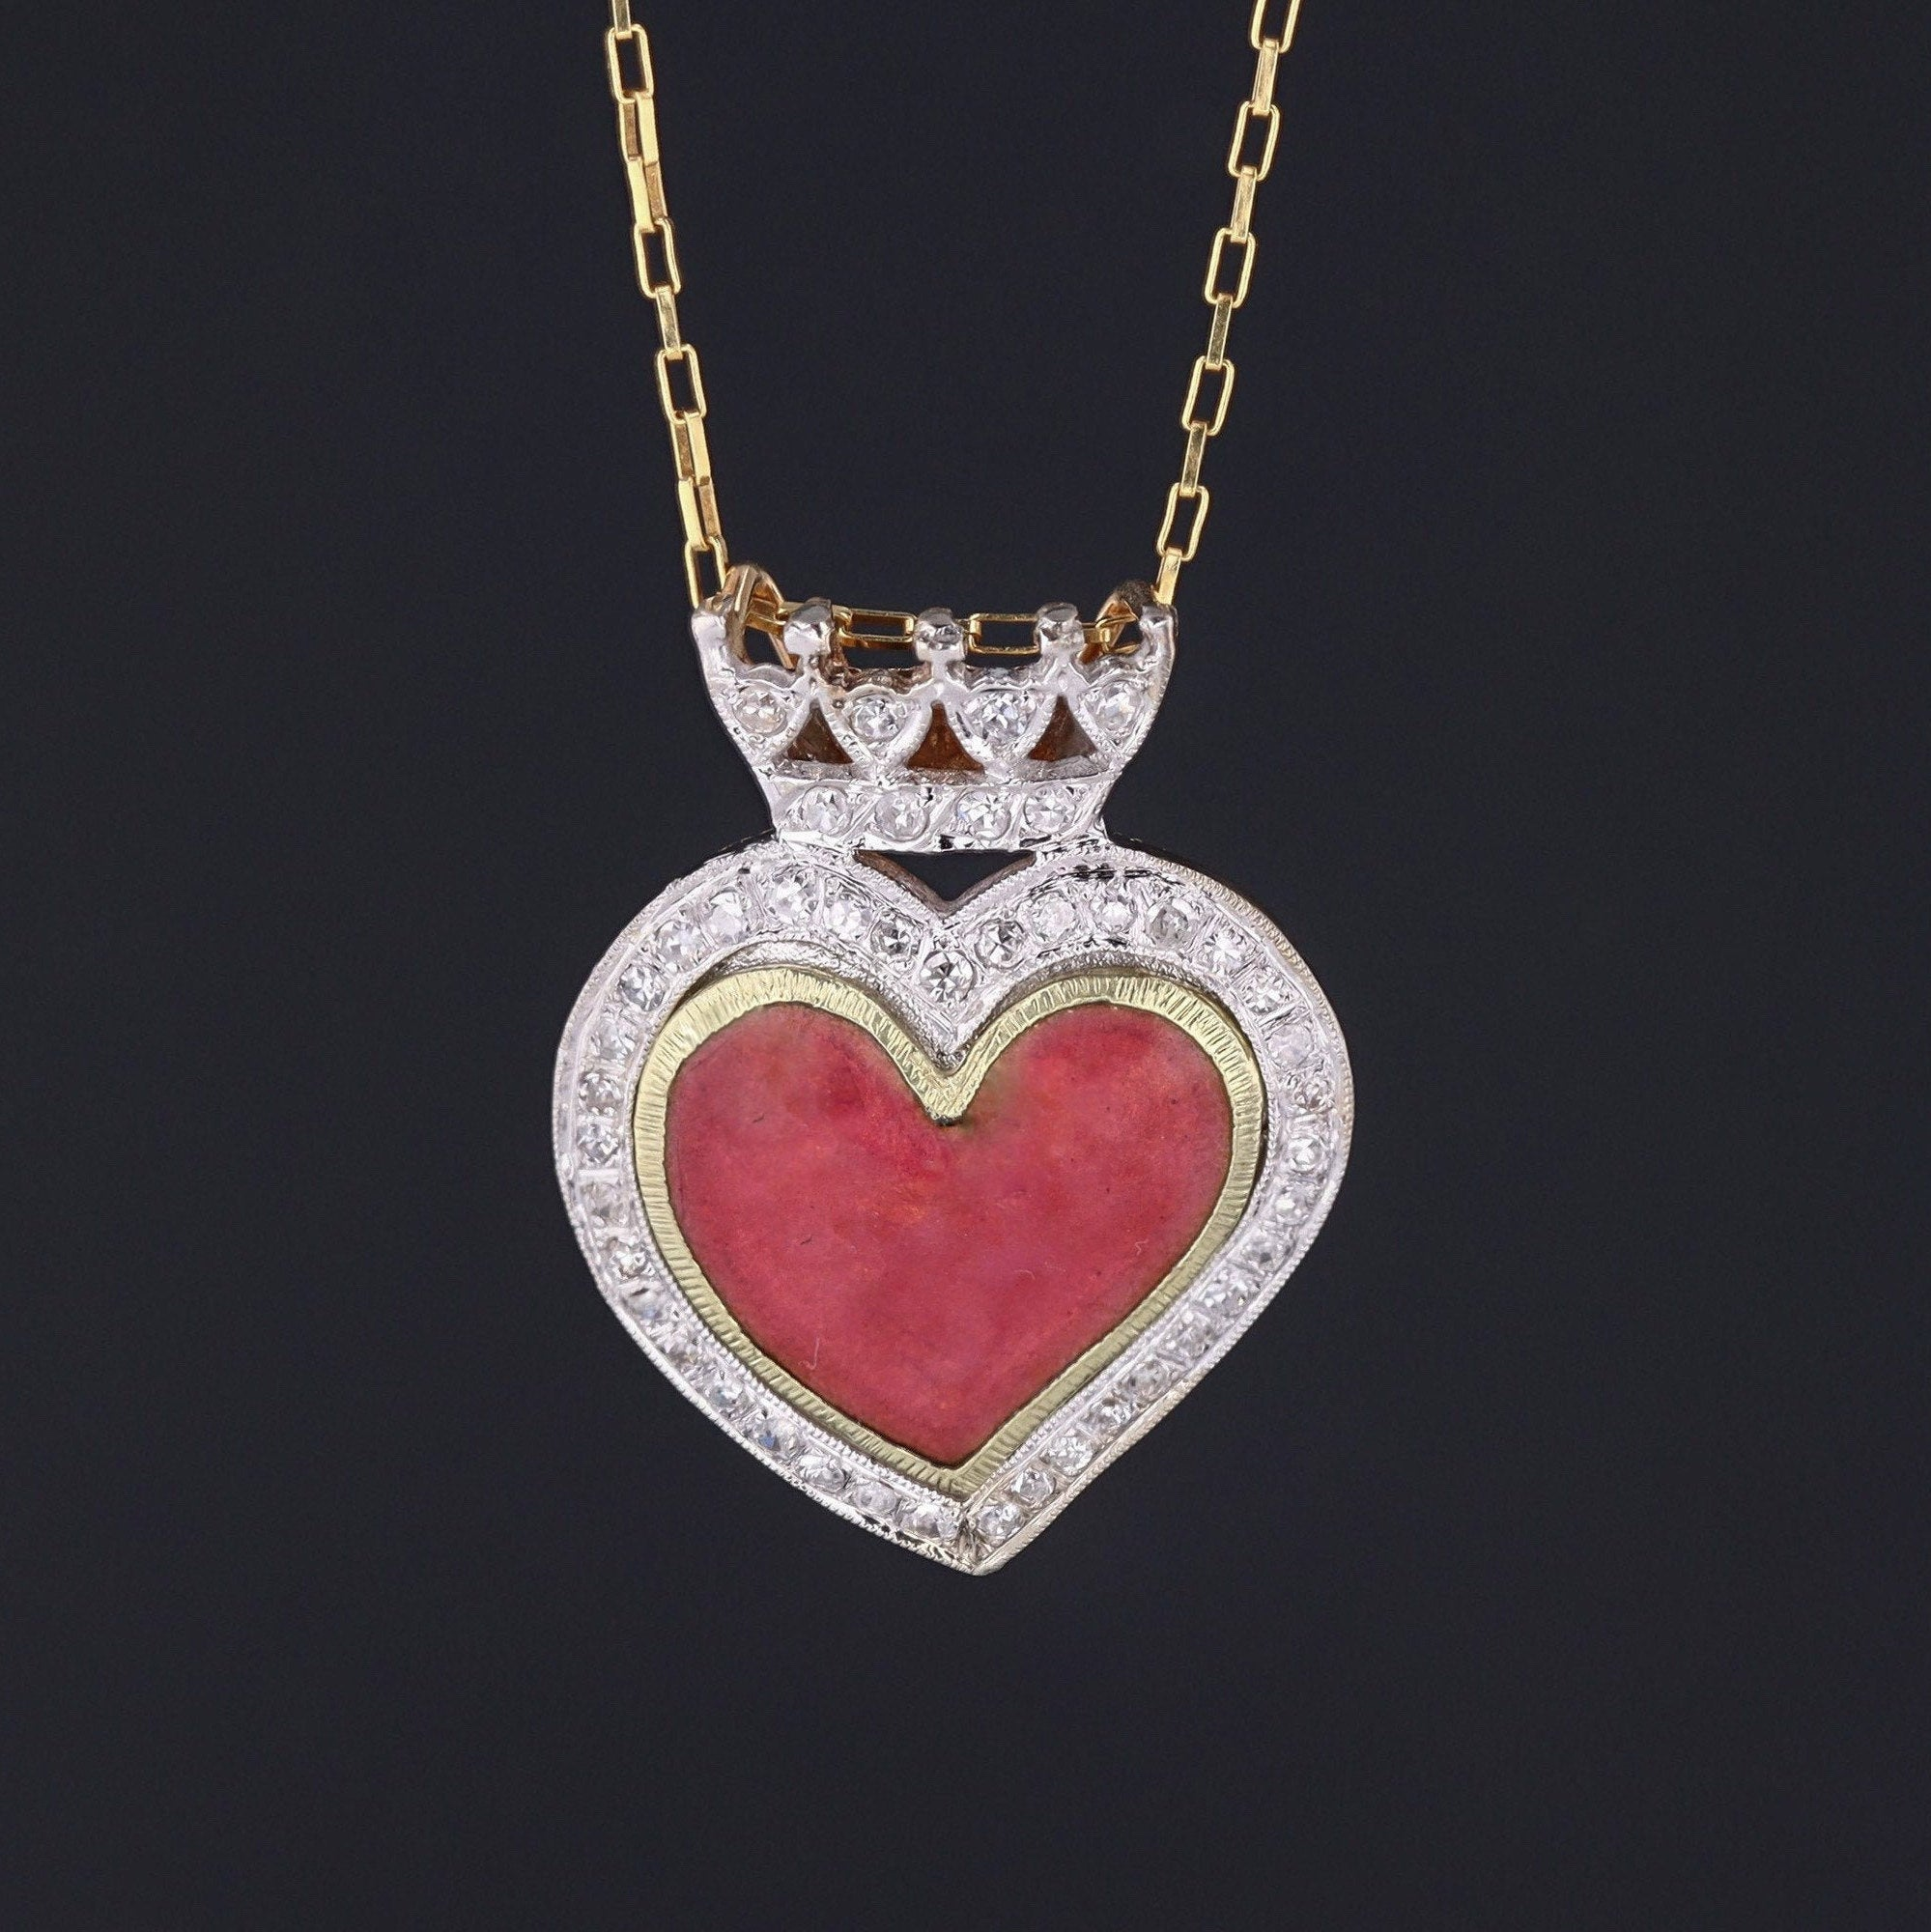 Enamel & Diamond Crowned Heart Pendant | Antique Enamel Heart | 14k Gold Heart Pendant on Optional 14k Chain